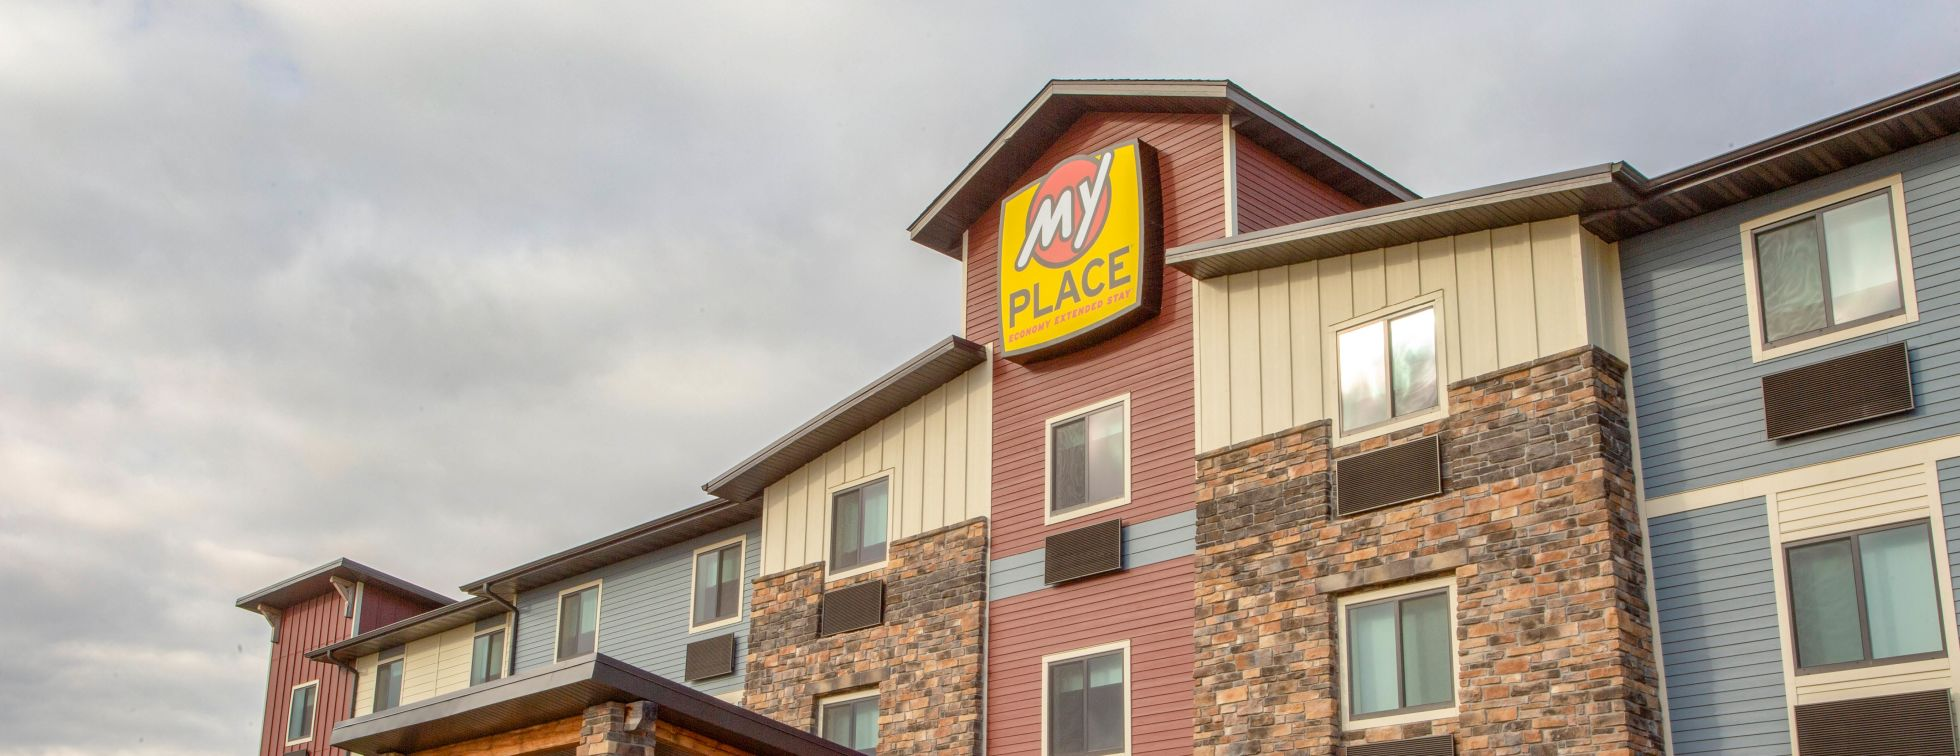 My Place Hotel Fargo Exterior Image